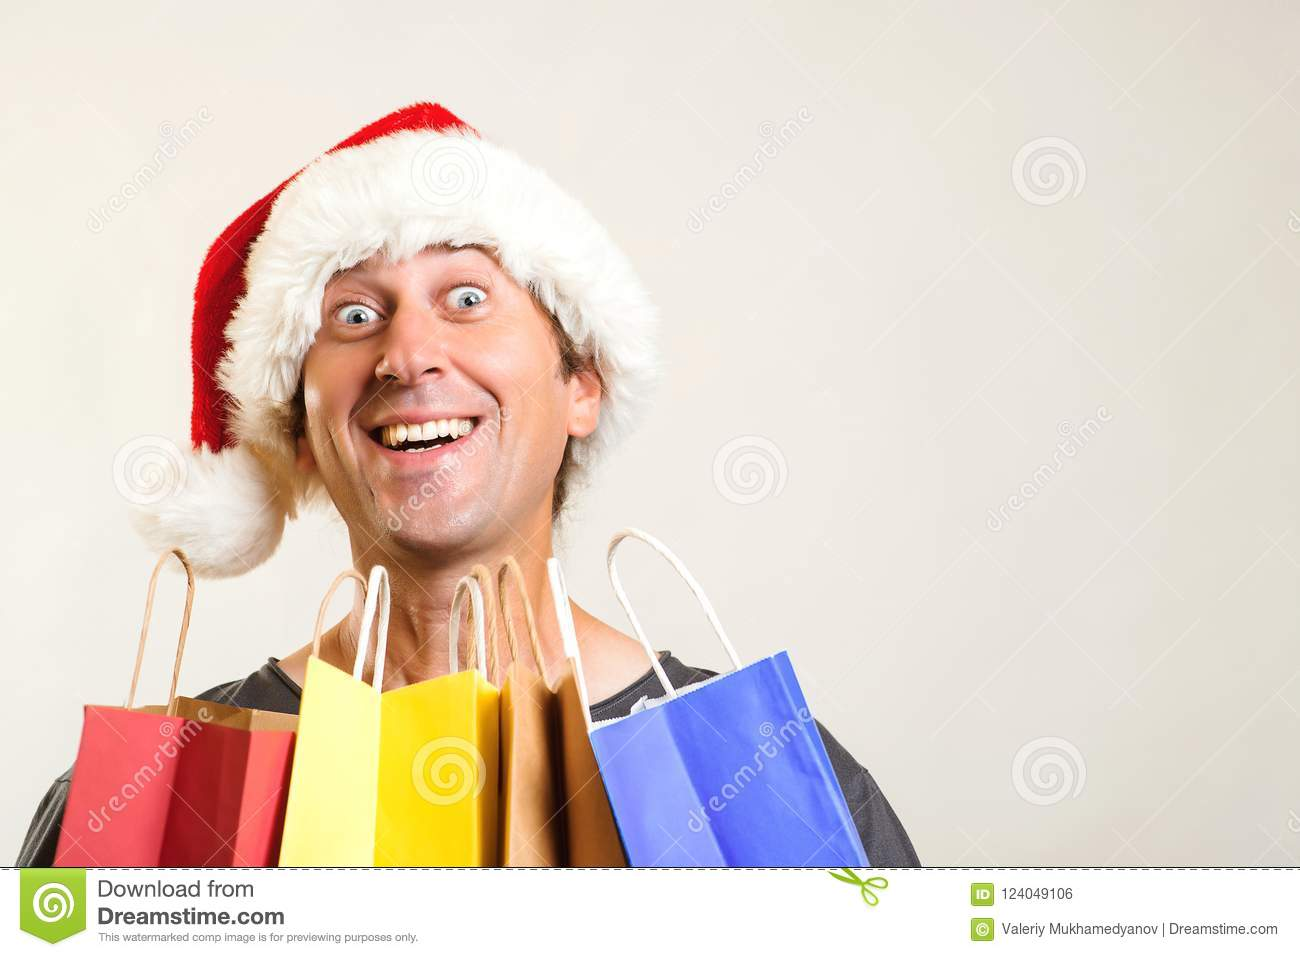 Surprised man in Christmas hat holds shopping bags, isolated on white. Christmas shopping and sales concept. Christmas discounts.